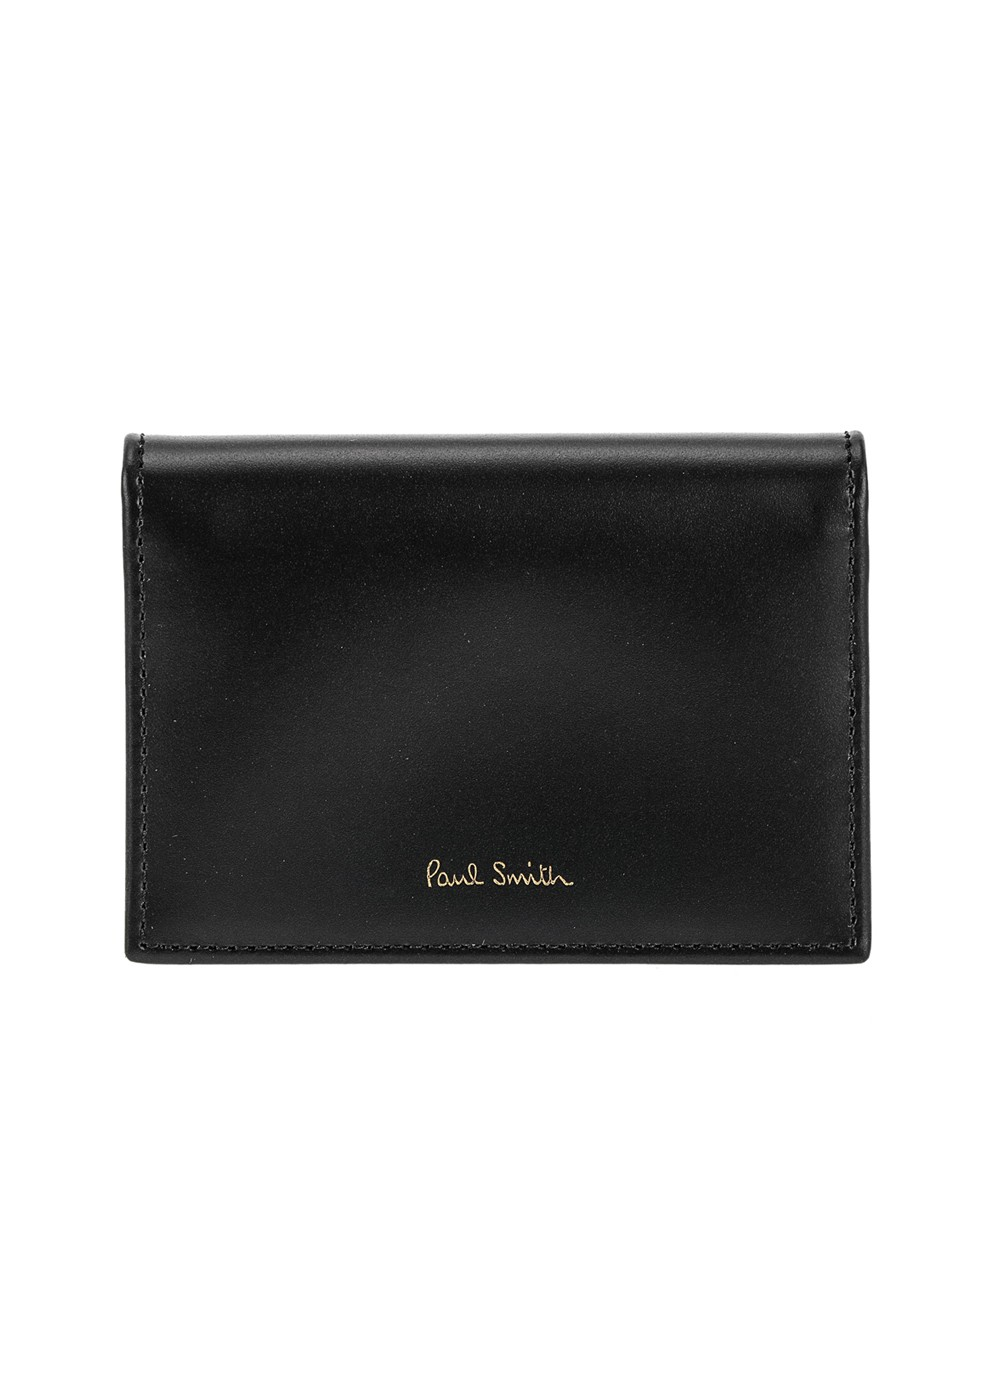 【最大50%OFF】【PAUL SMITH】名刺入れ|ブラック|名刺入れ|【週末限定】Special price ~ JIMMY CHOO / PAUL SMITH / EMPOLIO ARMANI ...etc~